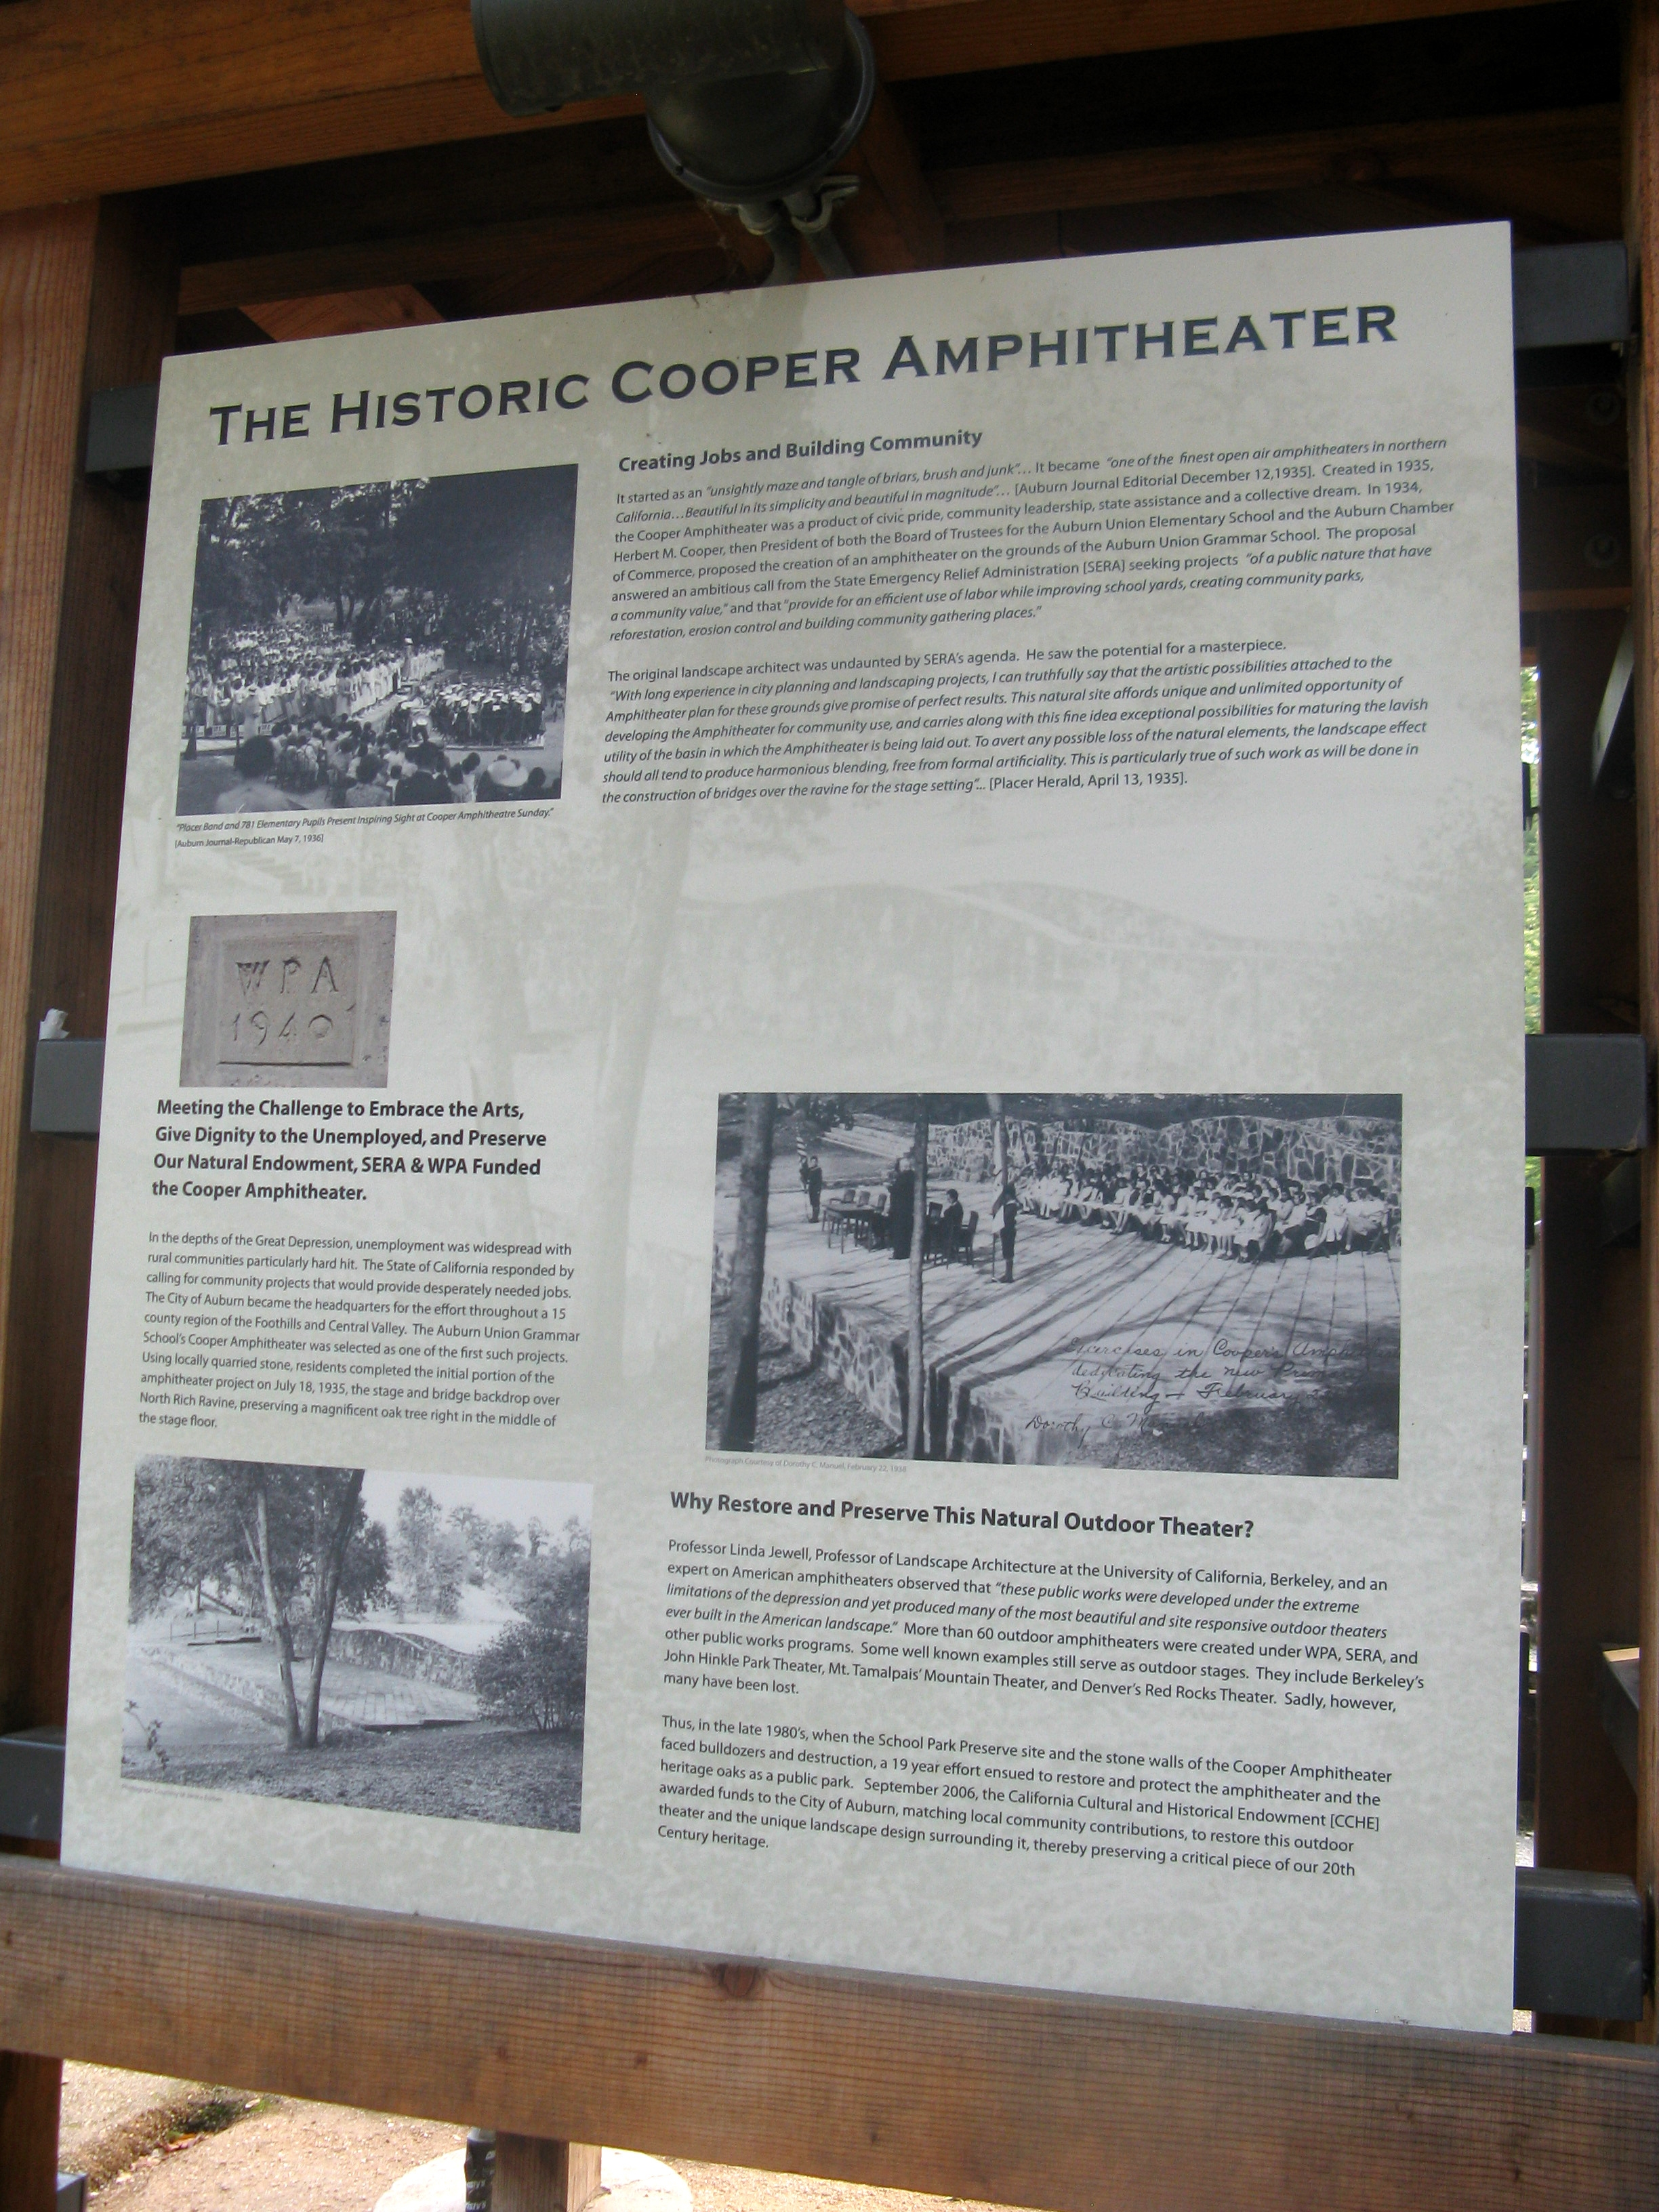 The Historic Cooper Amphitheater Marker